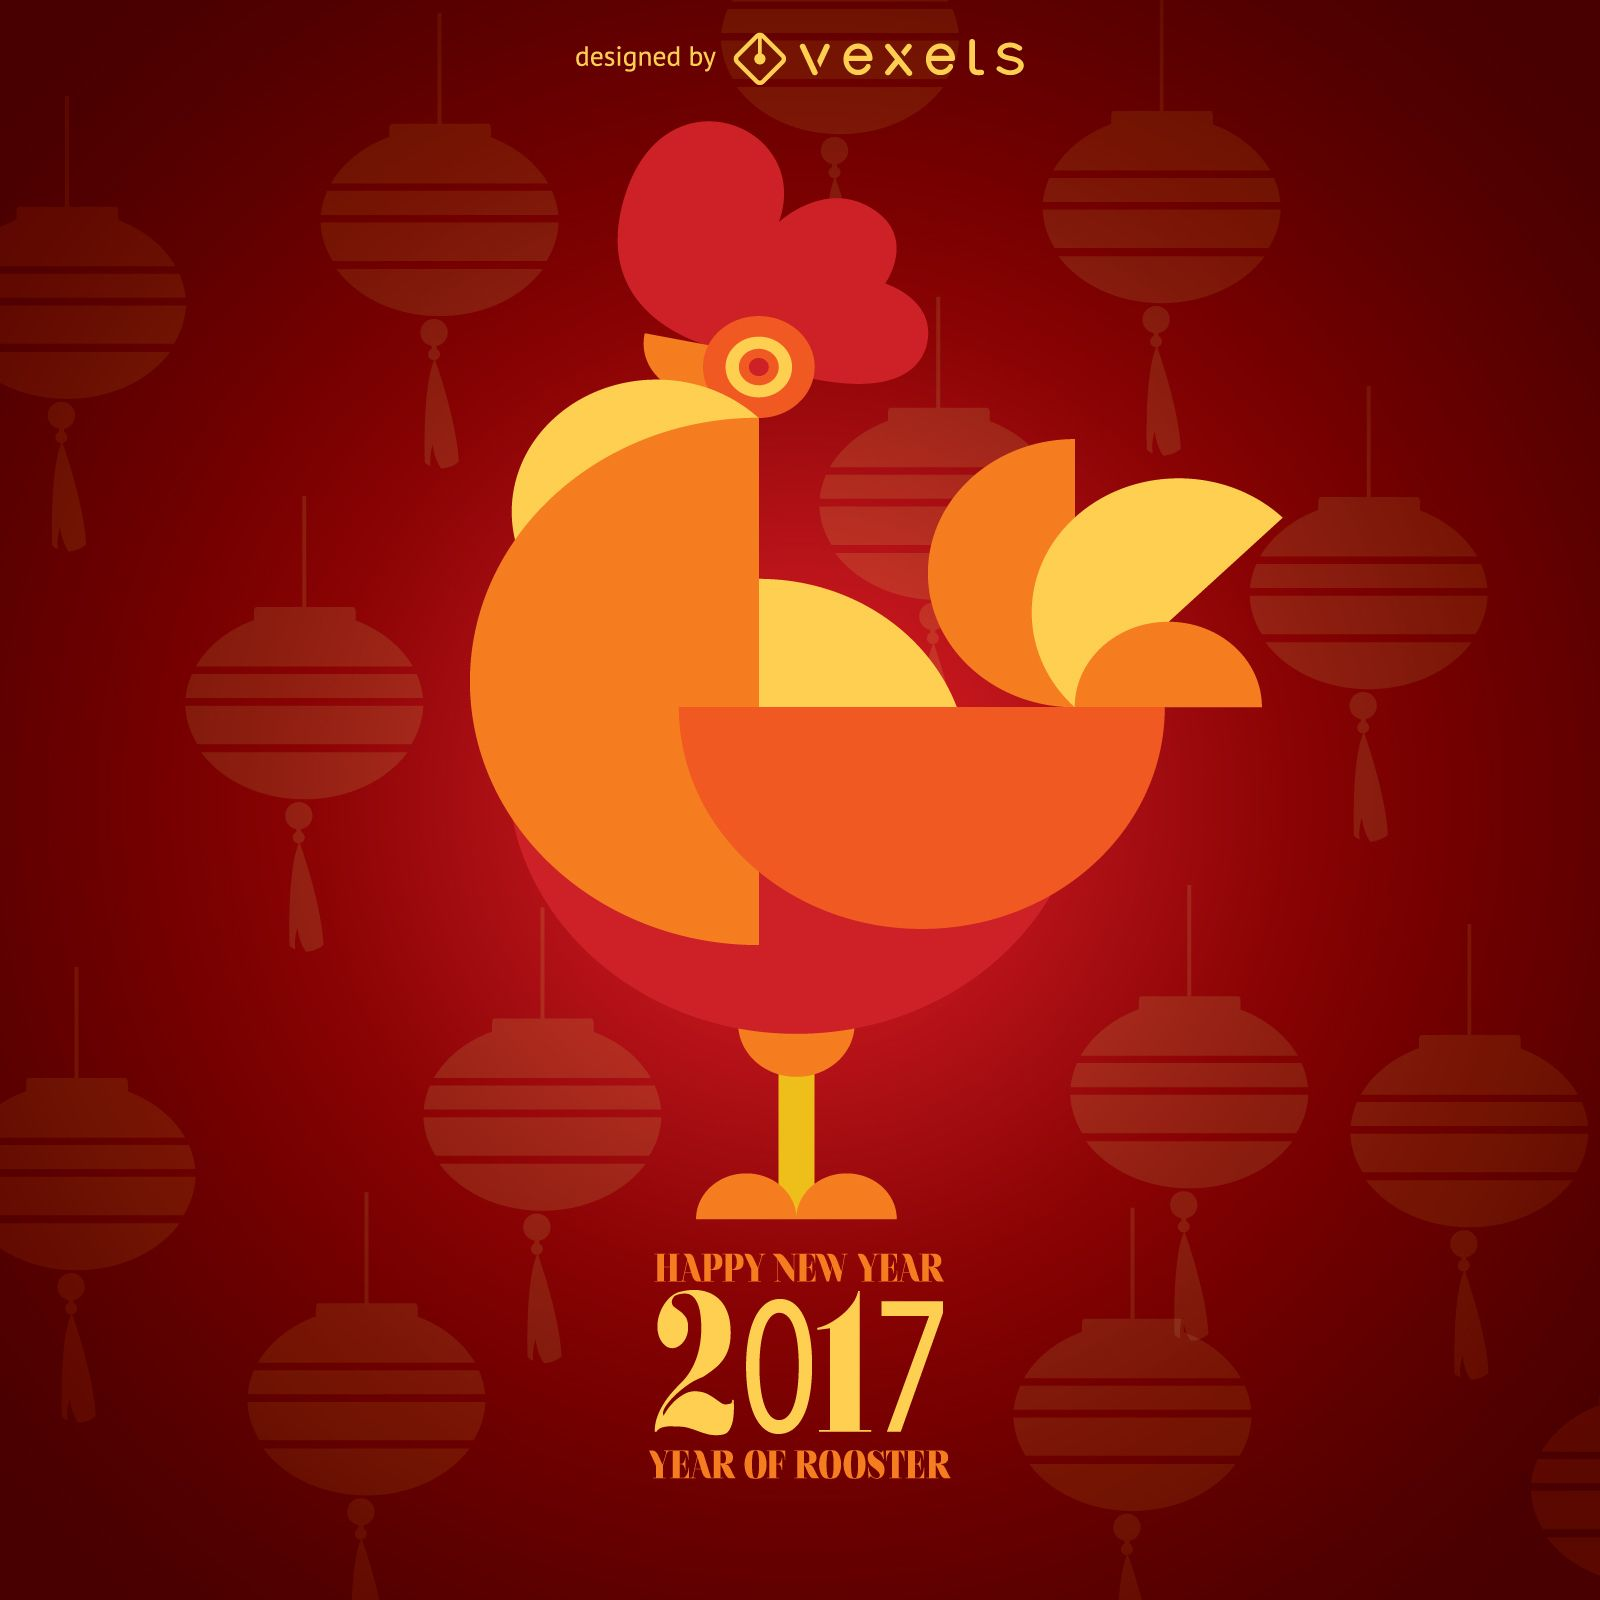 2017 Year of Rooster Chinese Horoscope